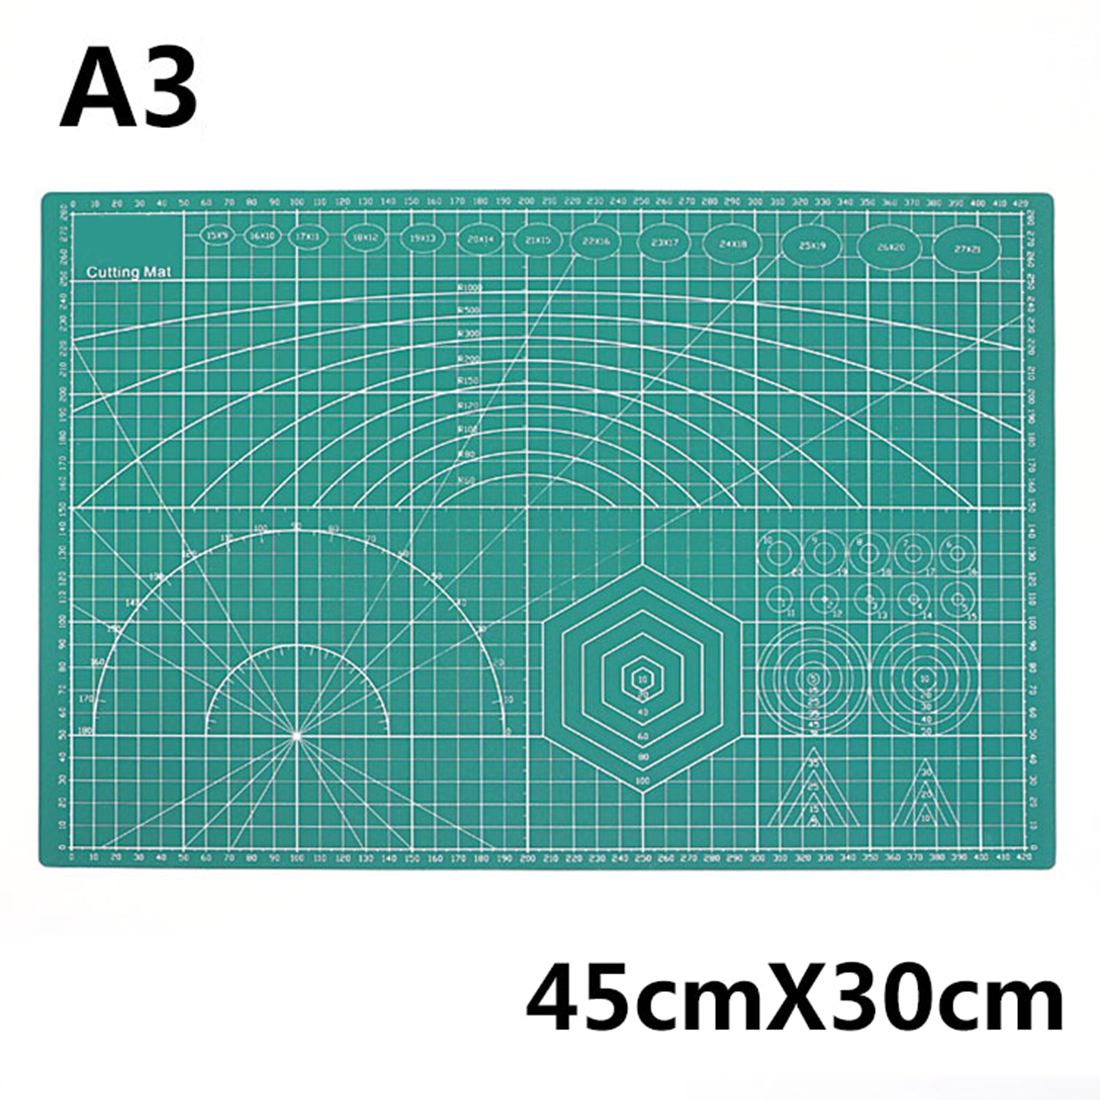 MODIKER Multifunctional Model Cutting Mat Self Healing Cutting Pad PVC A3 A4 A5 Cutting Board Water Gel Blaster Modification